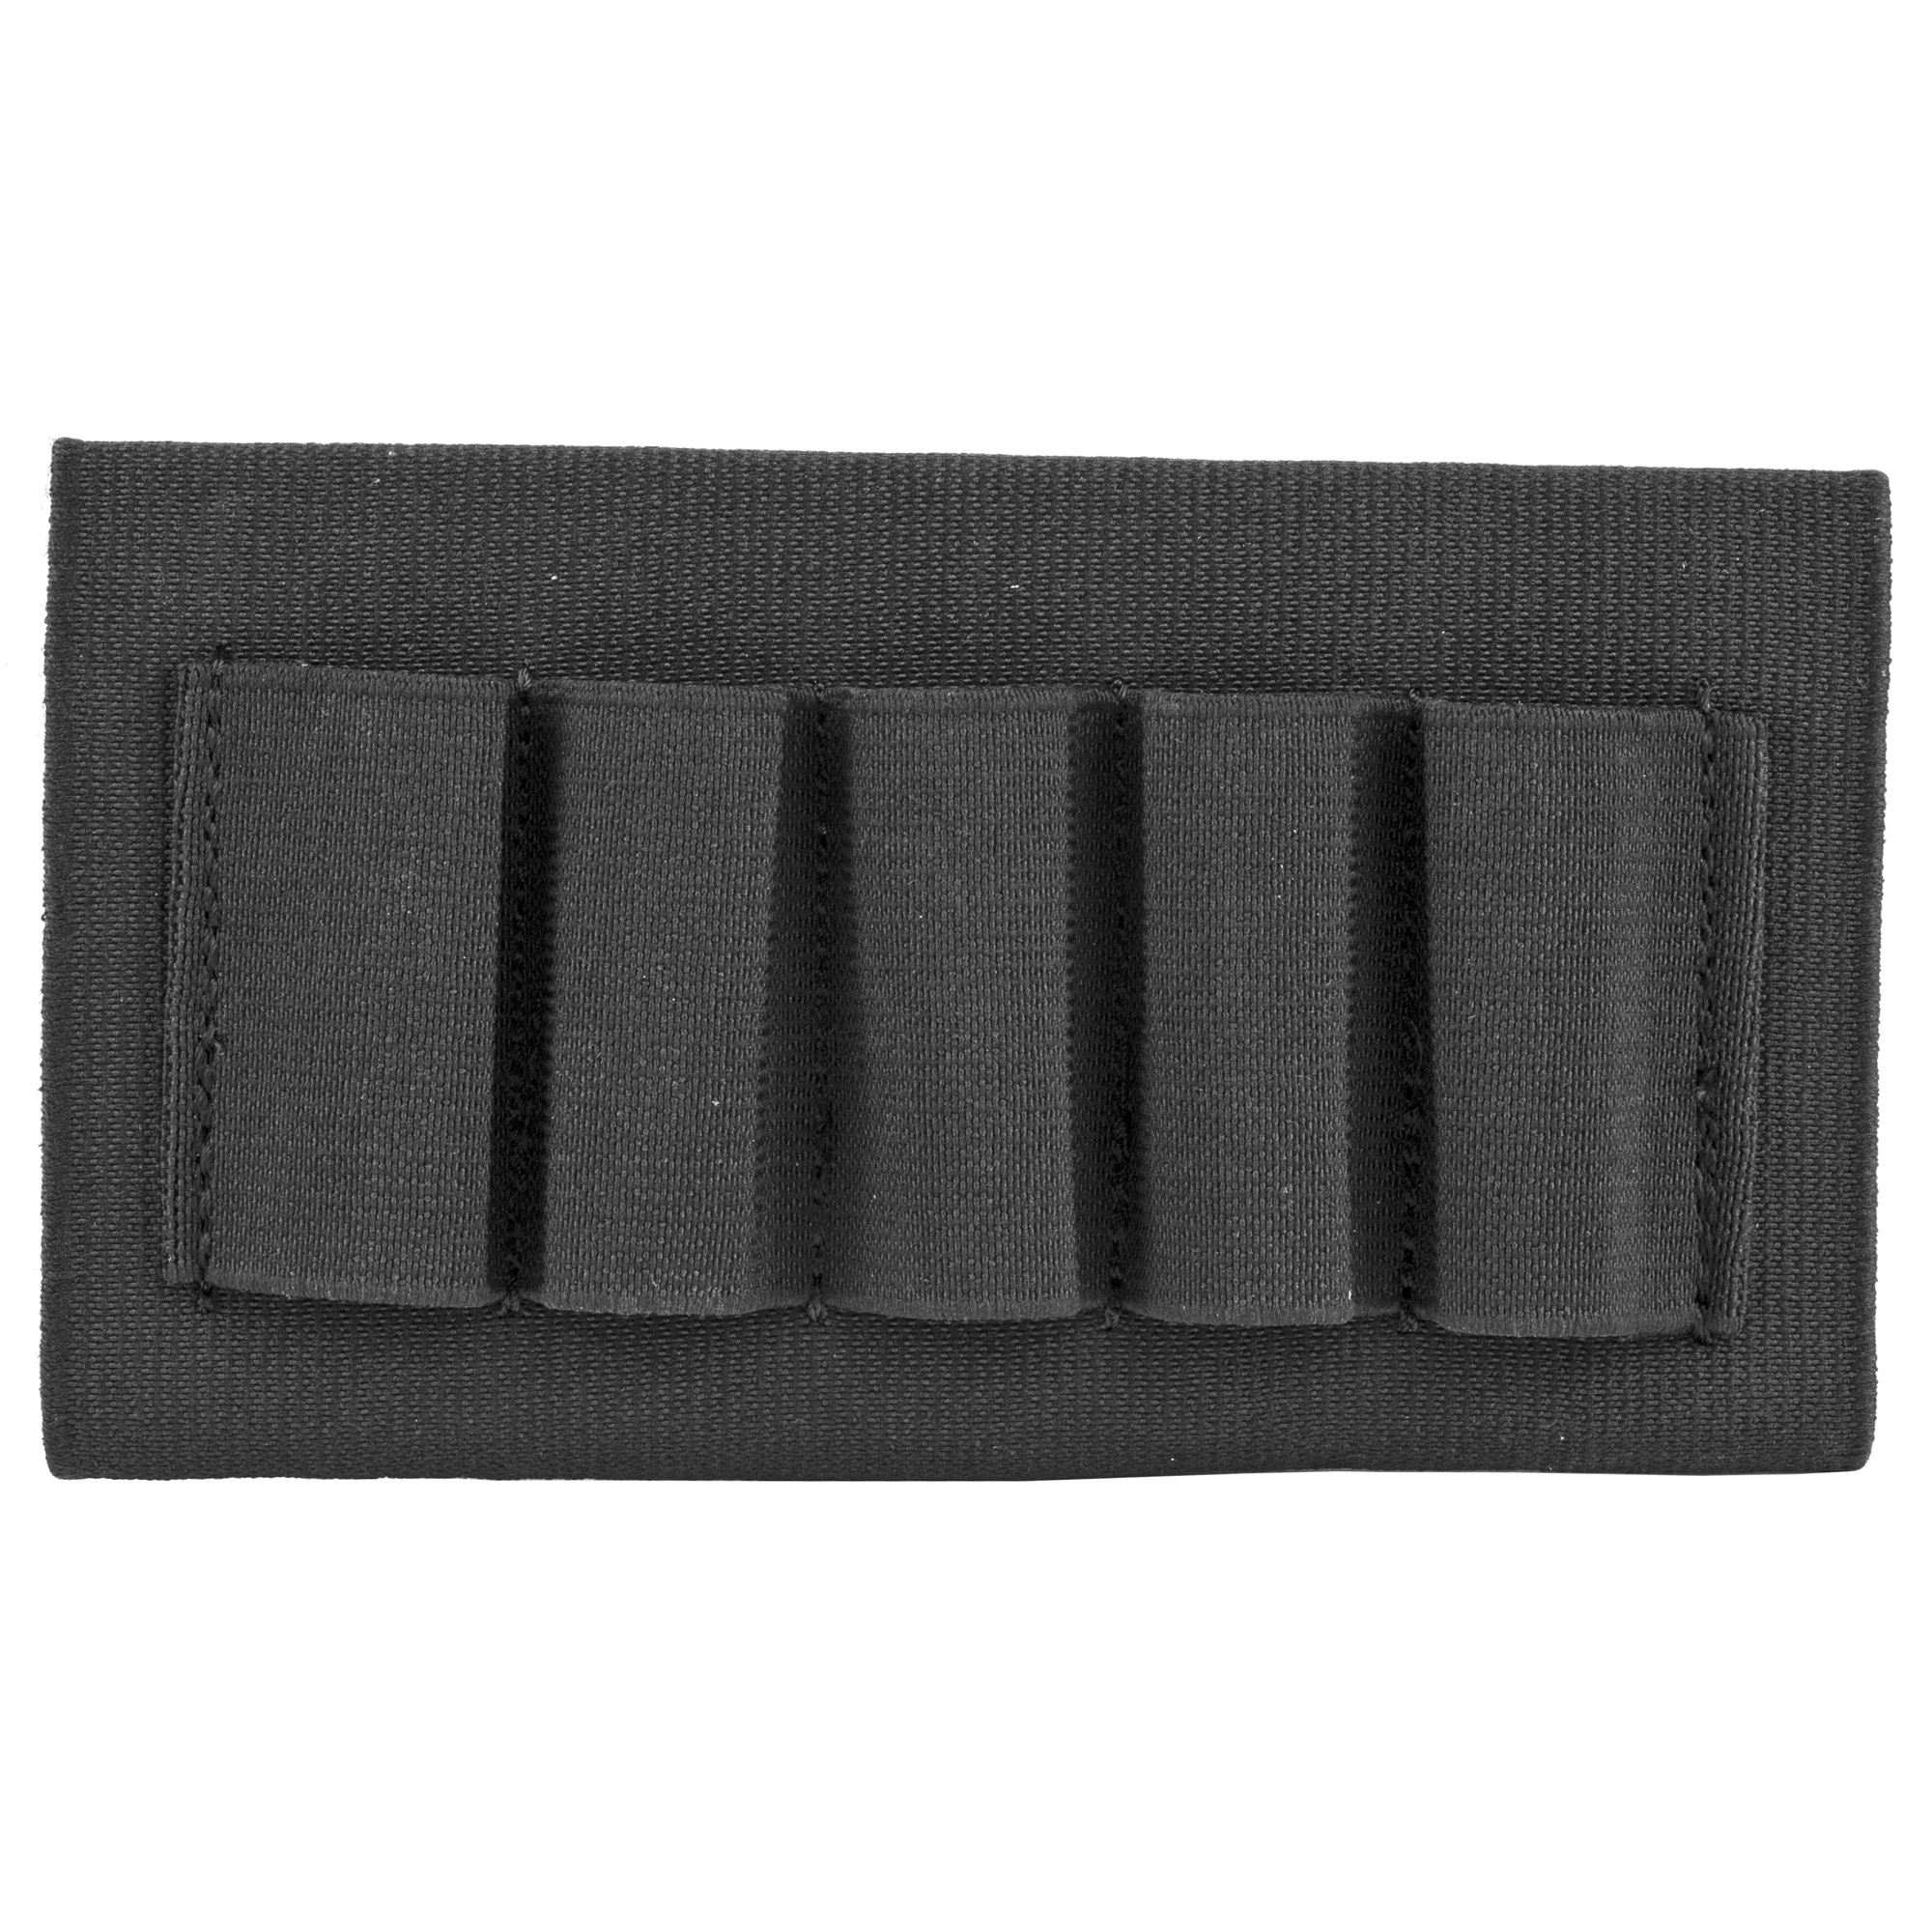 This open style shotgun buttstock shell holder holds 5 shells. Elastic sleeve quickly secures over shotgun and the sewn-on elastic loops keep 5 shotgun shells in place and organized.